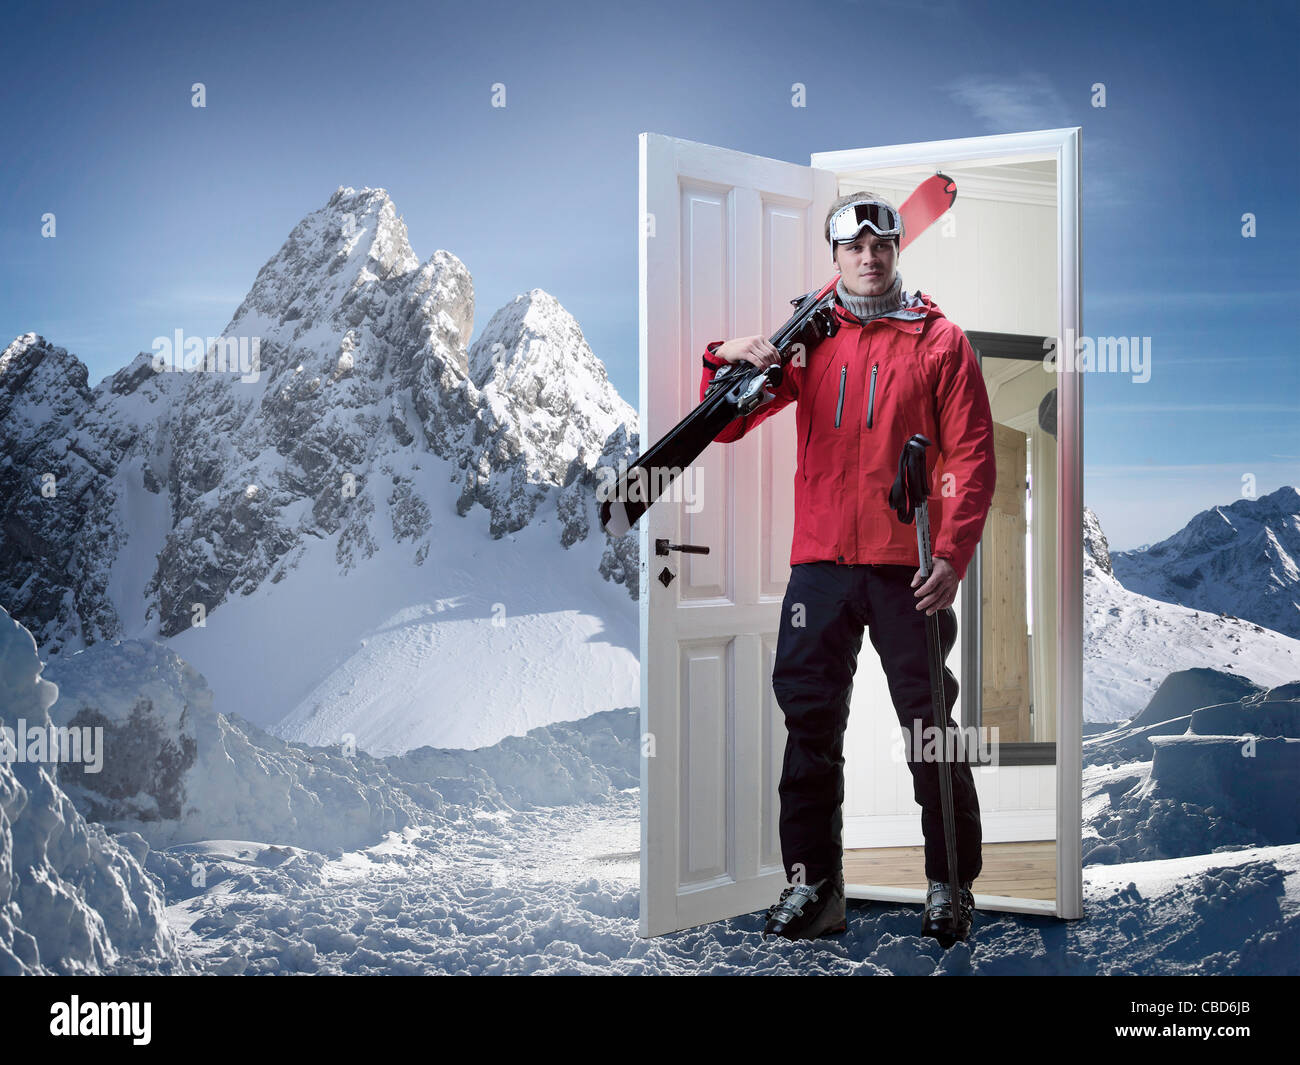 Skier emerging from door in mountains - Stock Image